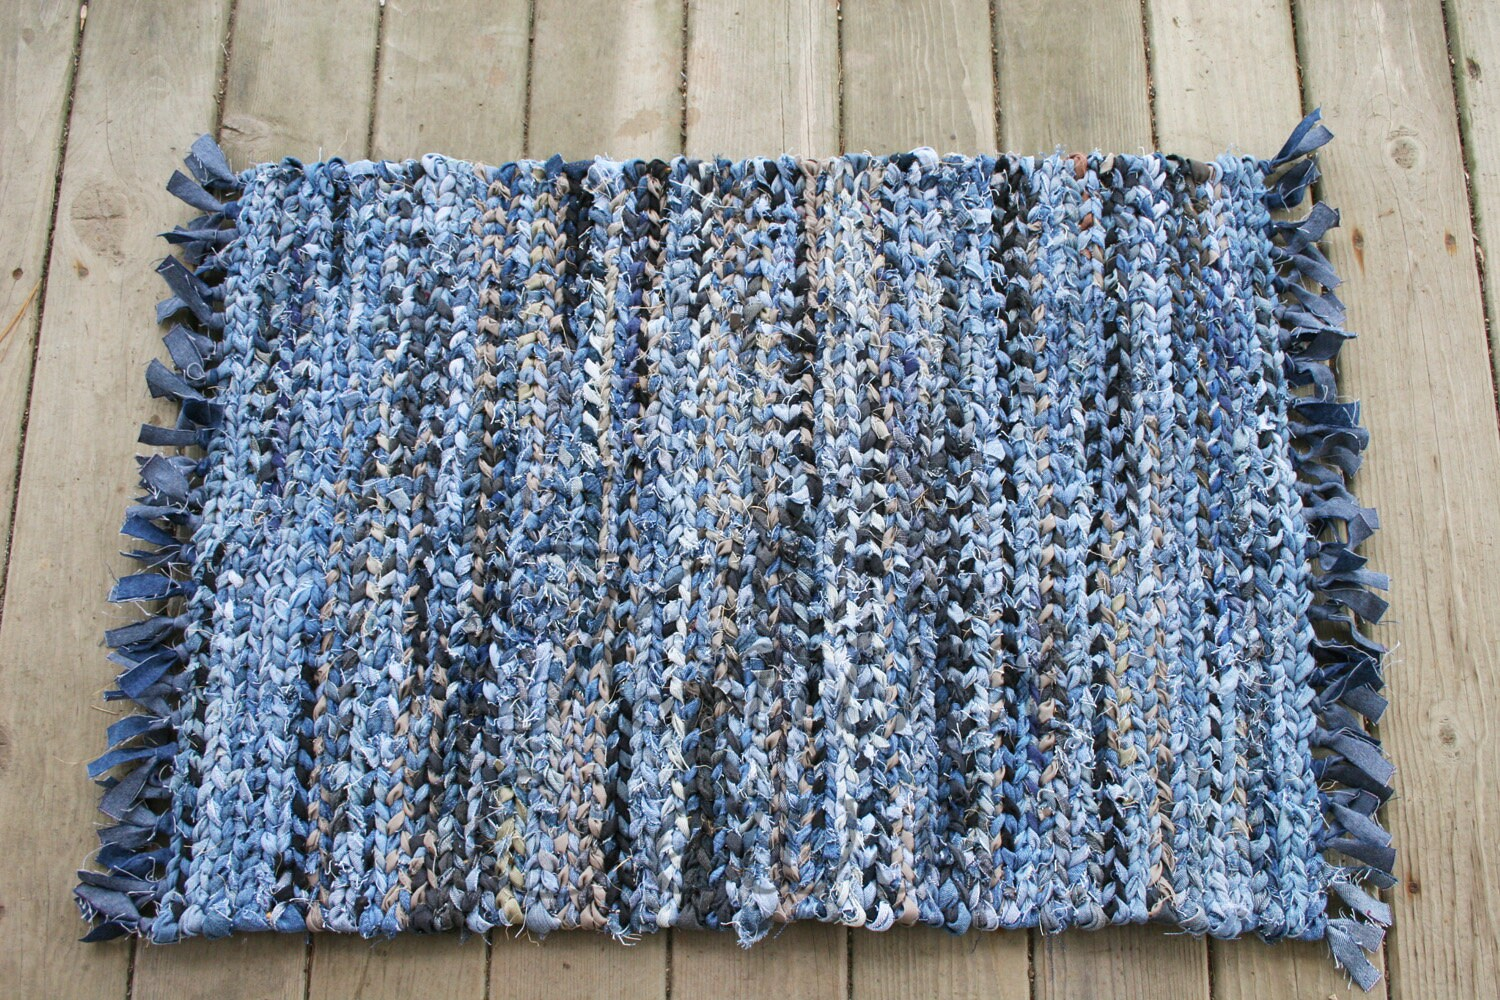 Teppich Monster High Rag Rug Twined Rag Rug Country Style Rag Rug Hand Woven Denim Rug Cotton Area Rug Twined Rugs Rag Rug Teppich Sisal Handmade Loomed Rugs